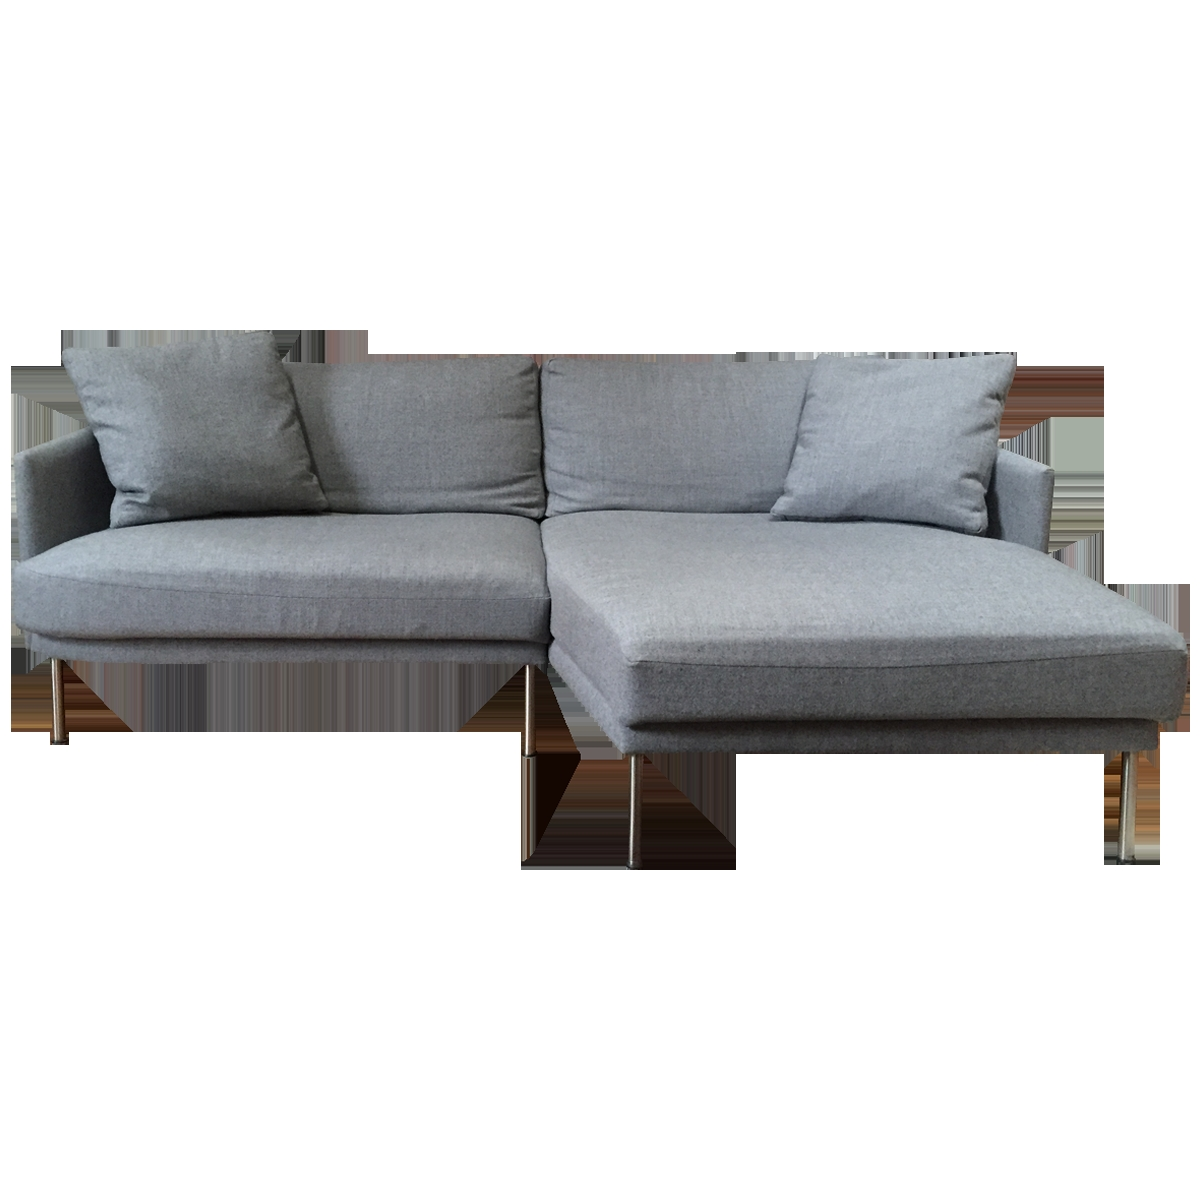 12 Photo Of Compact Sectional Sofas